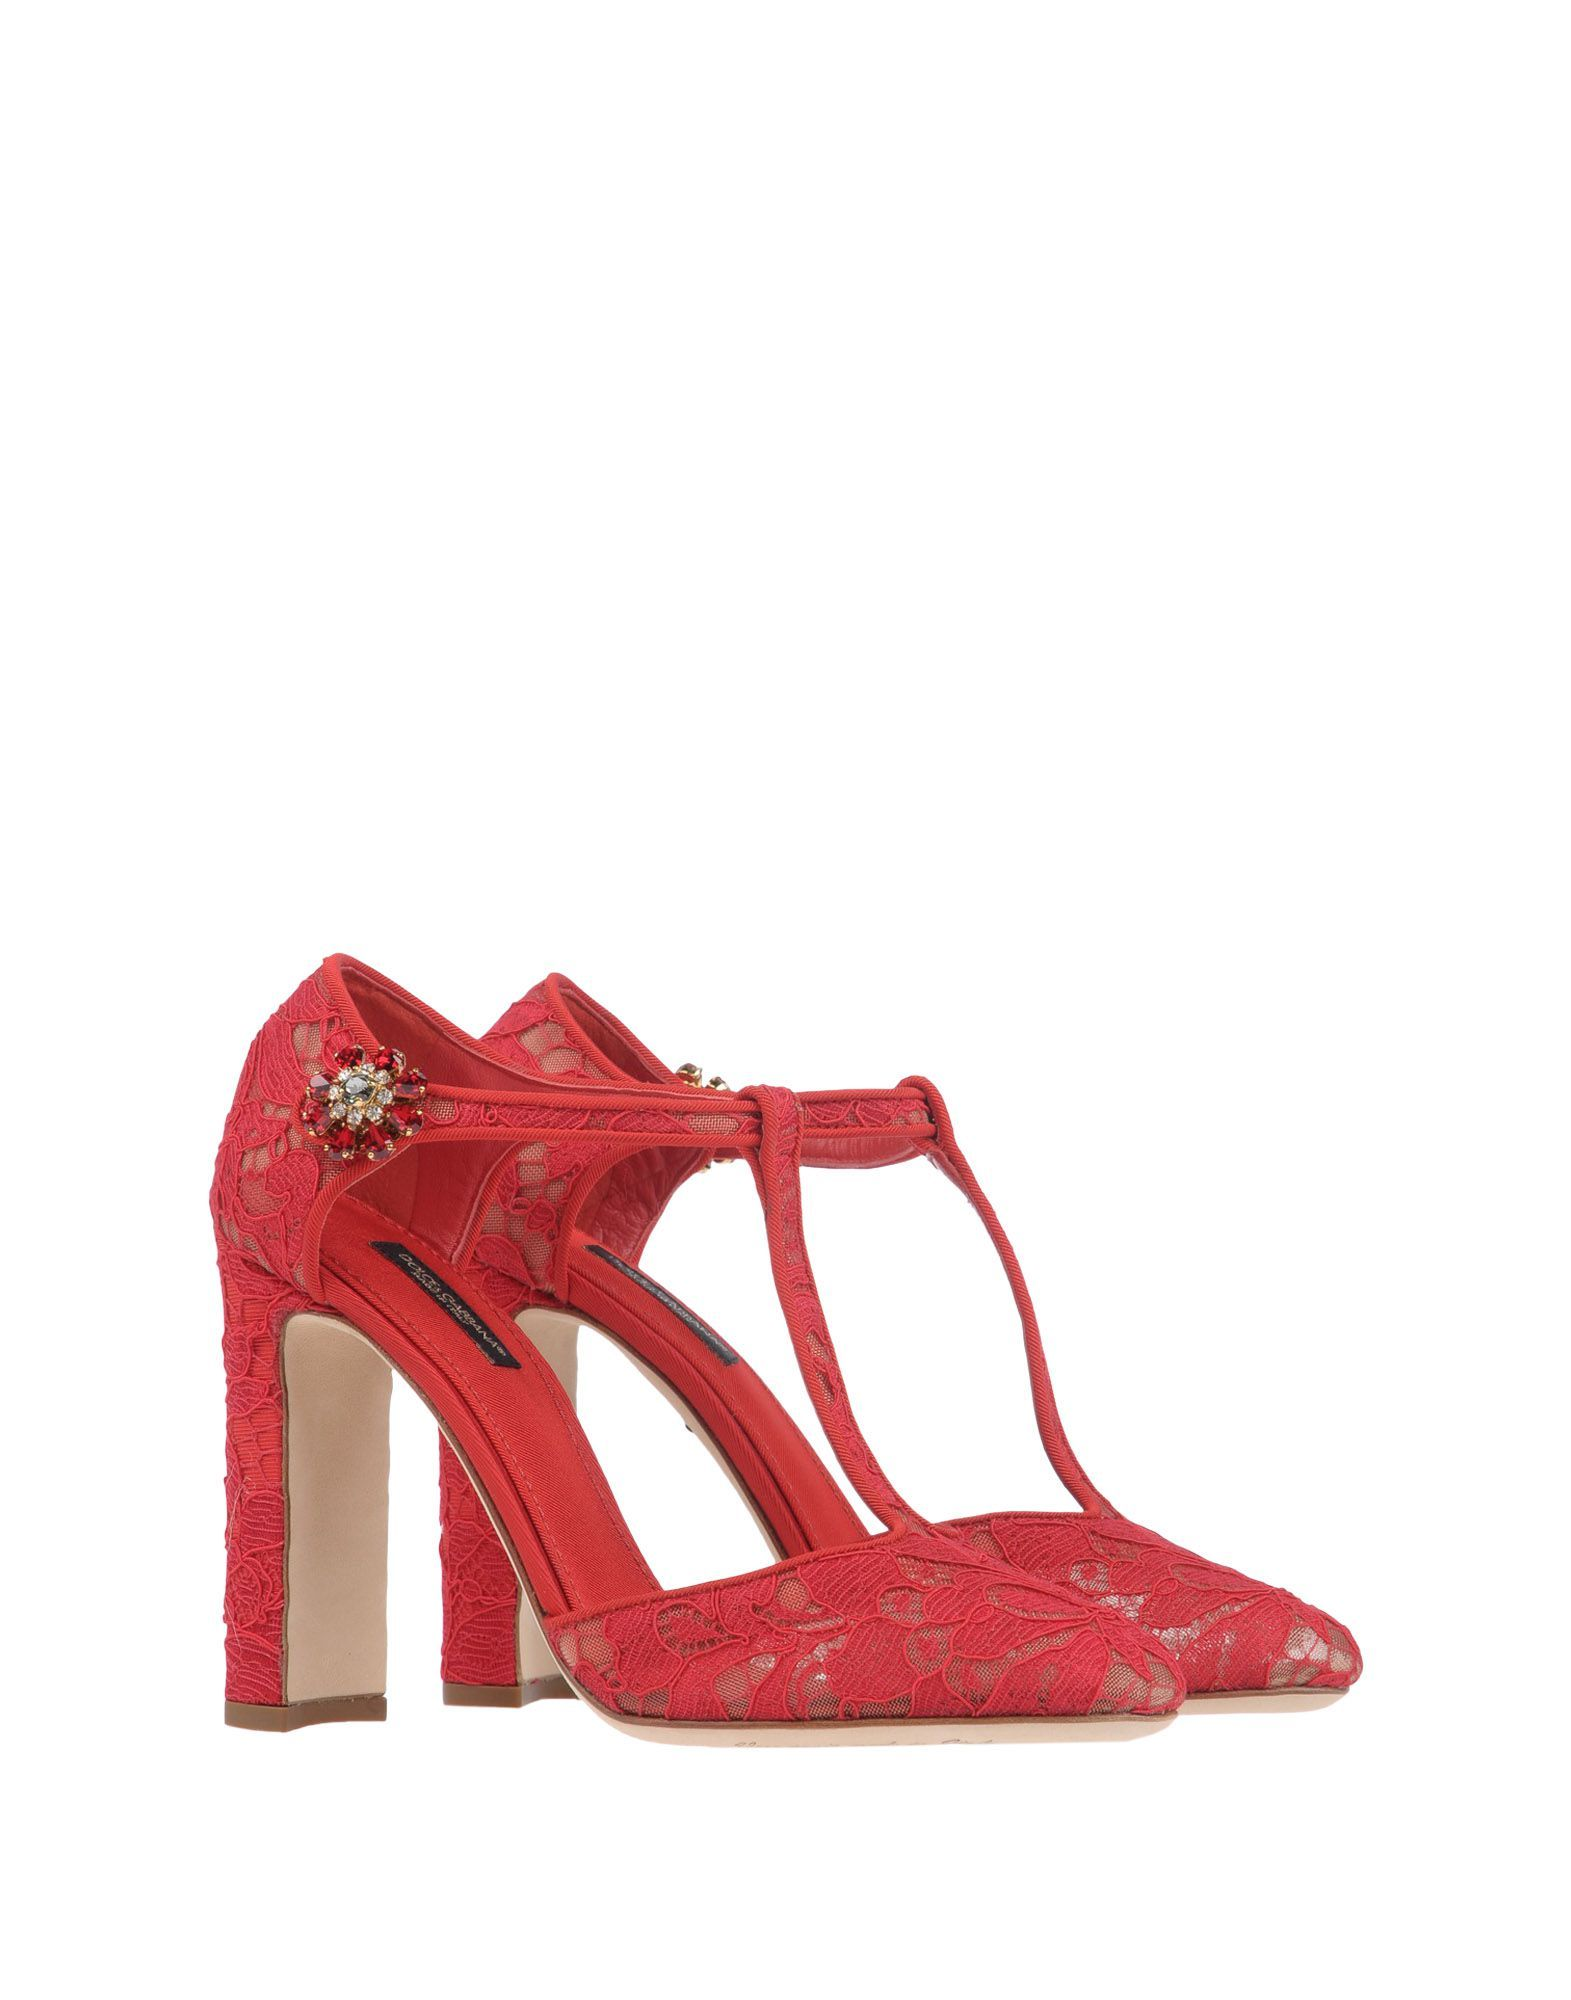 665c9e83c Dolce & Gabbana Court - Women Dolce & Gabbana Courts online on YOOX United  Kingdom - 11198224PO. Find this Pin and more on shoes Dolce Gabbana- Gucci  ...